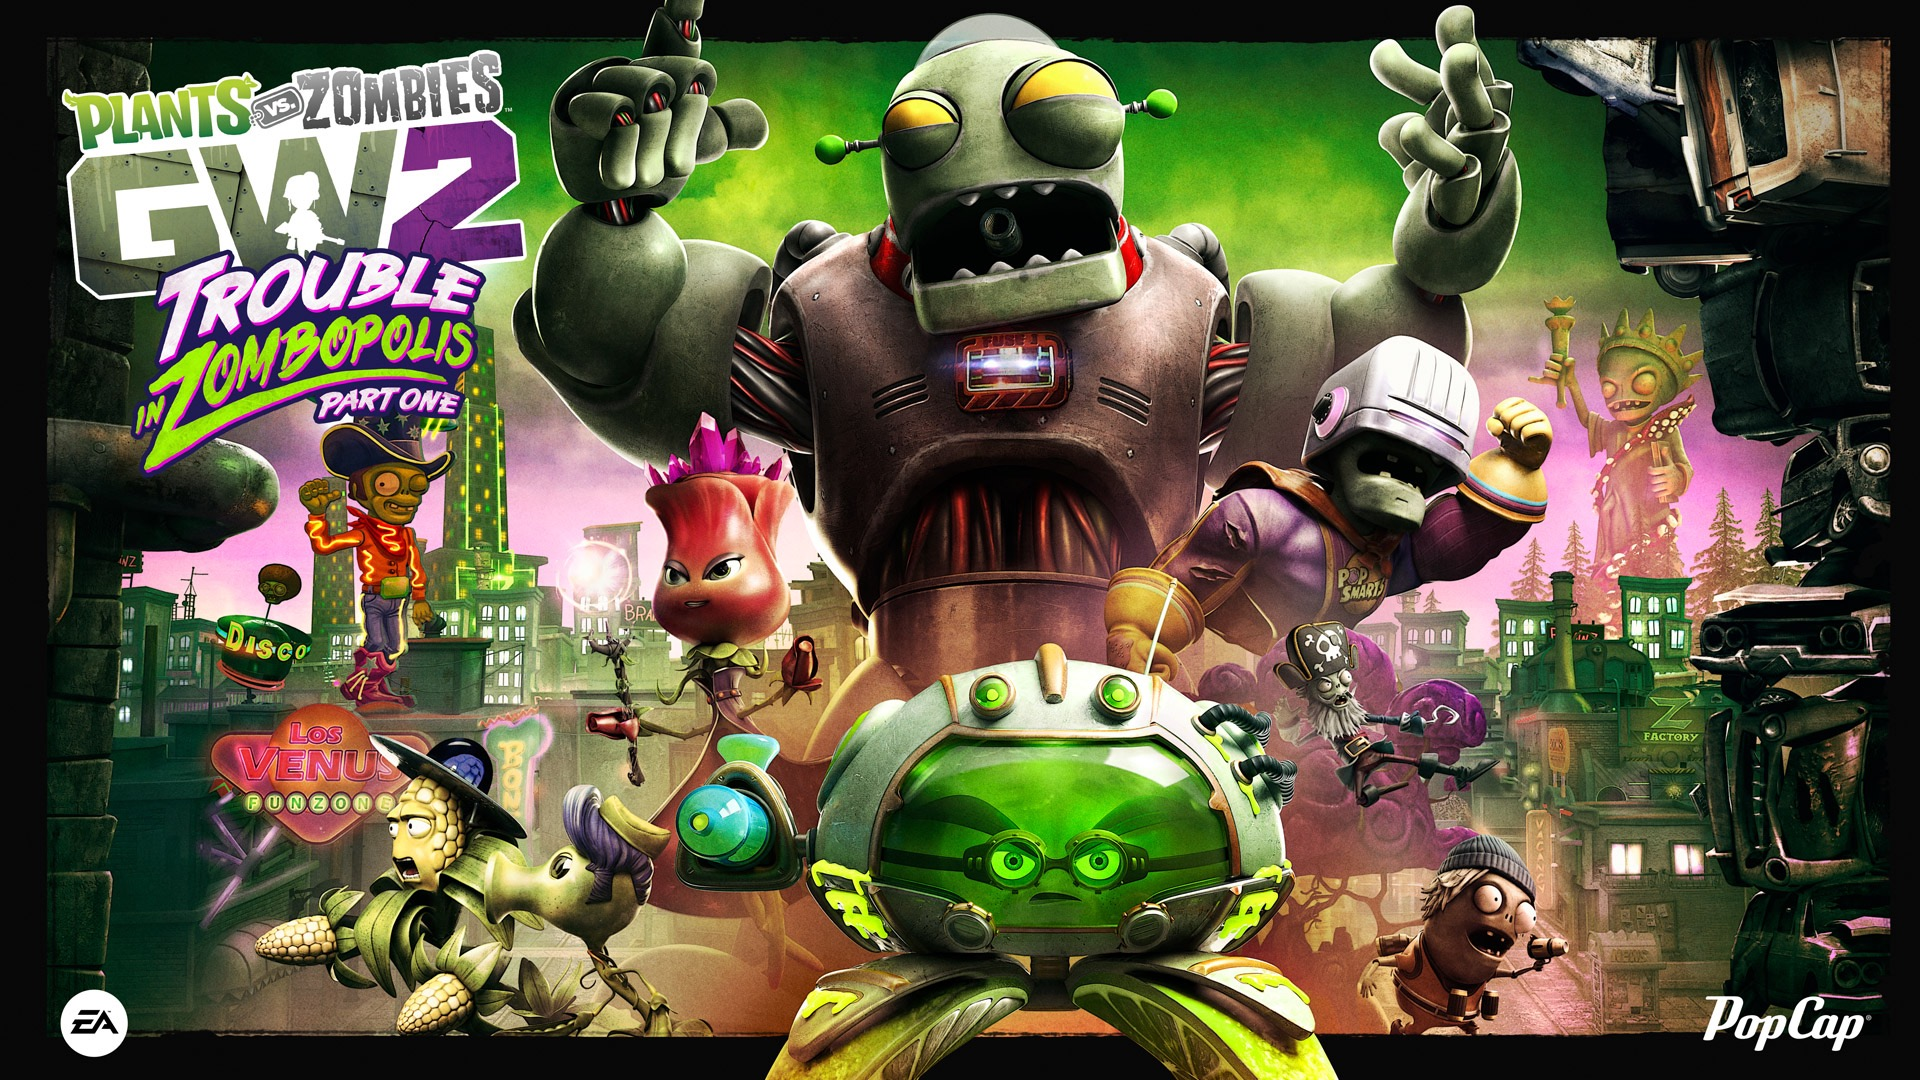 Plants Vs Zombies Garden Warfare 2 Gets Free Trouble In Zombopolis Dlc Xbox One Xbox 360